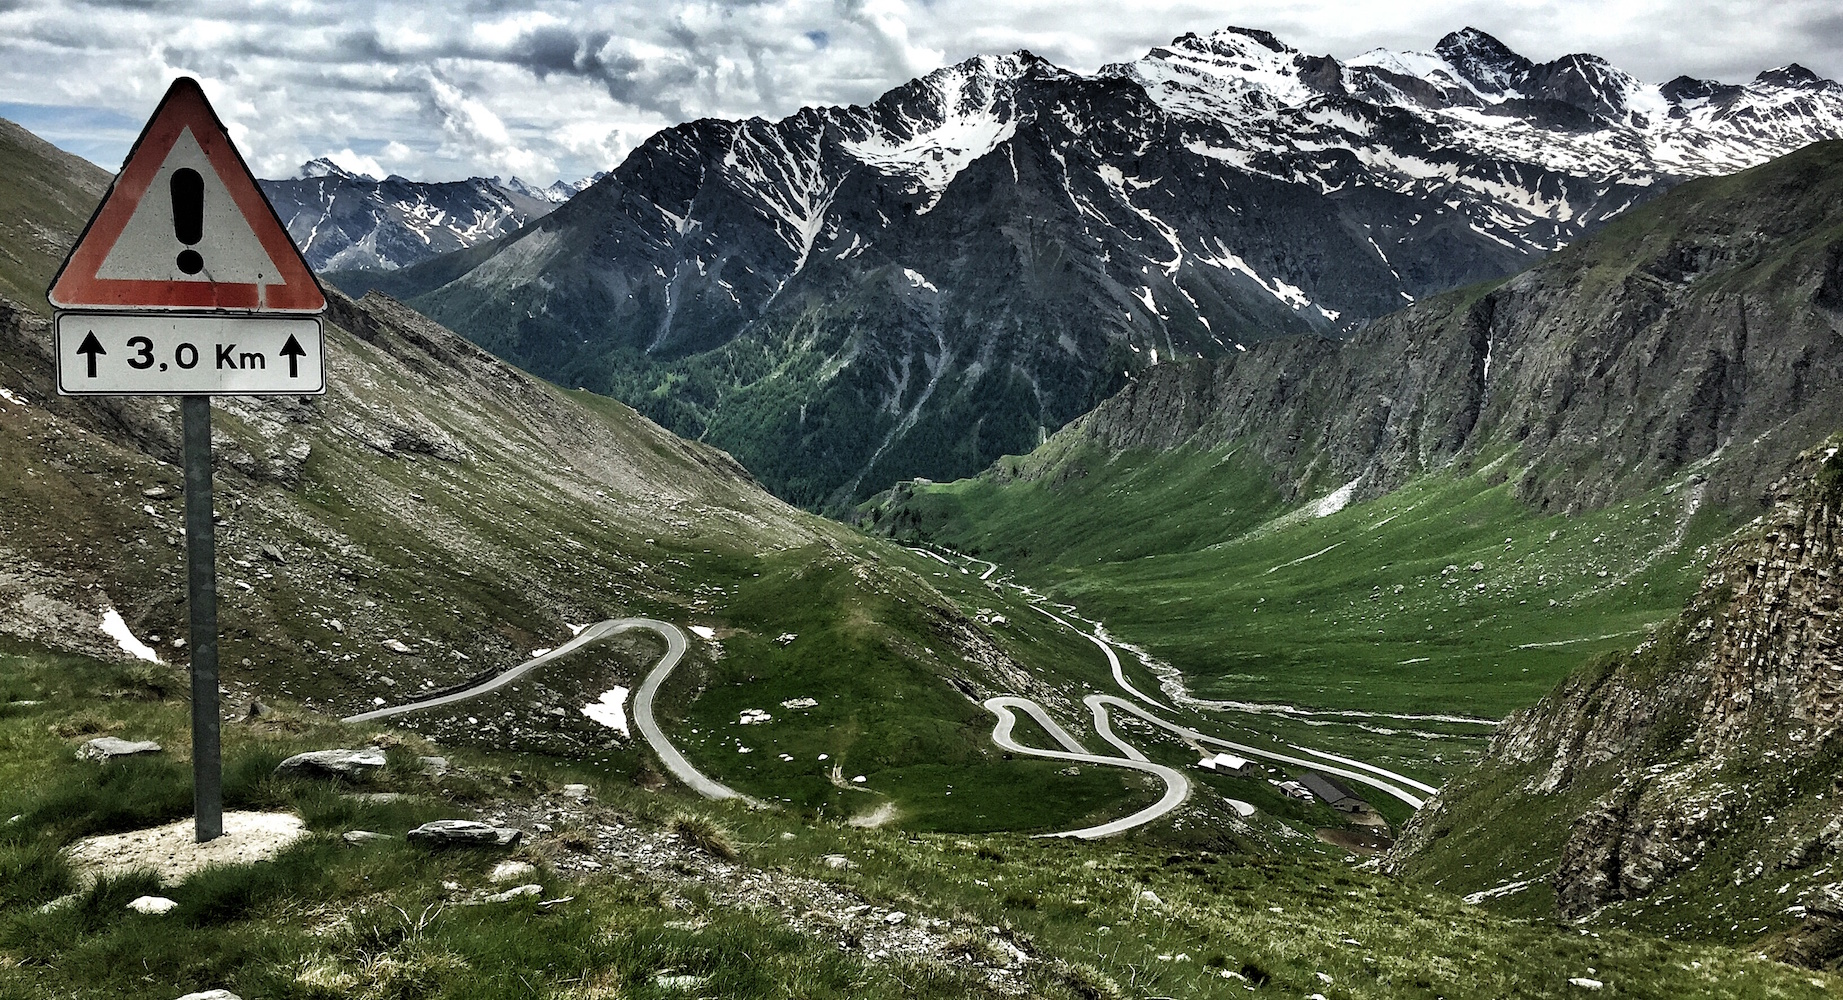 If you're going to spend c.24 hours on a single climb, pick something really compelling: The Agnello, Cottian Alps.